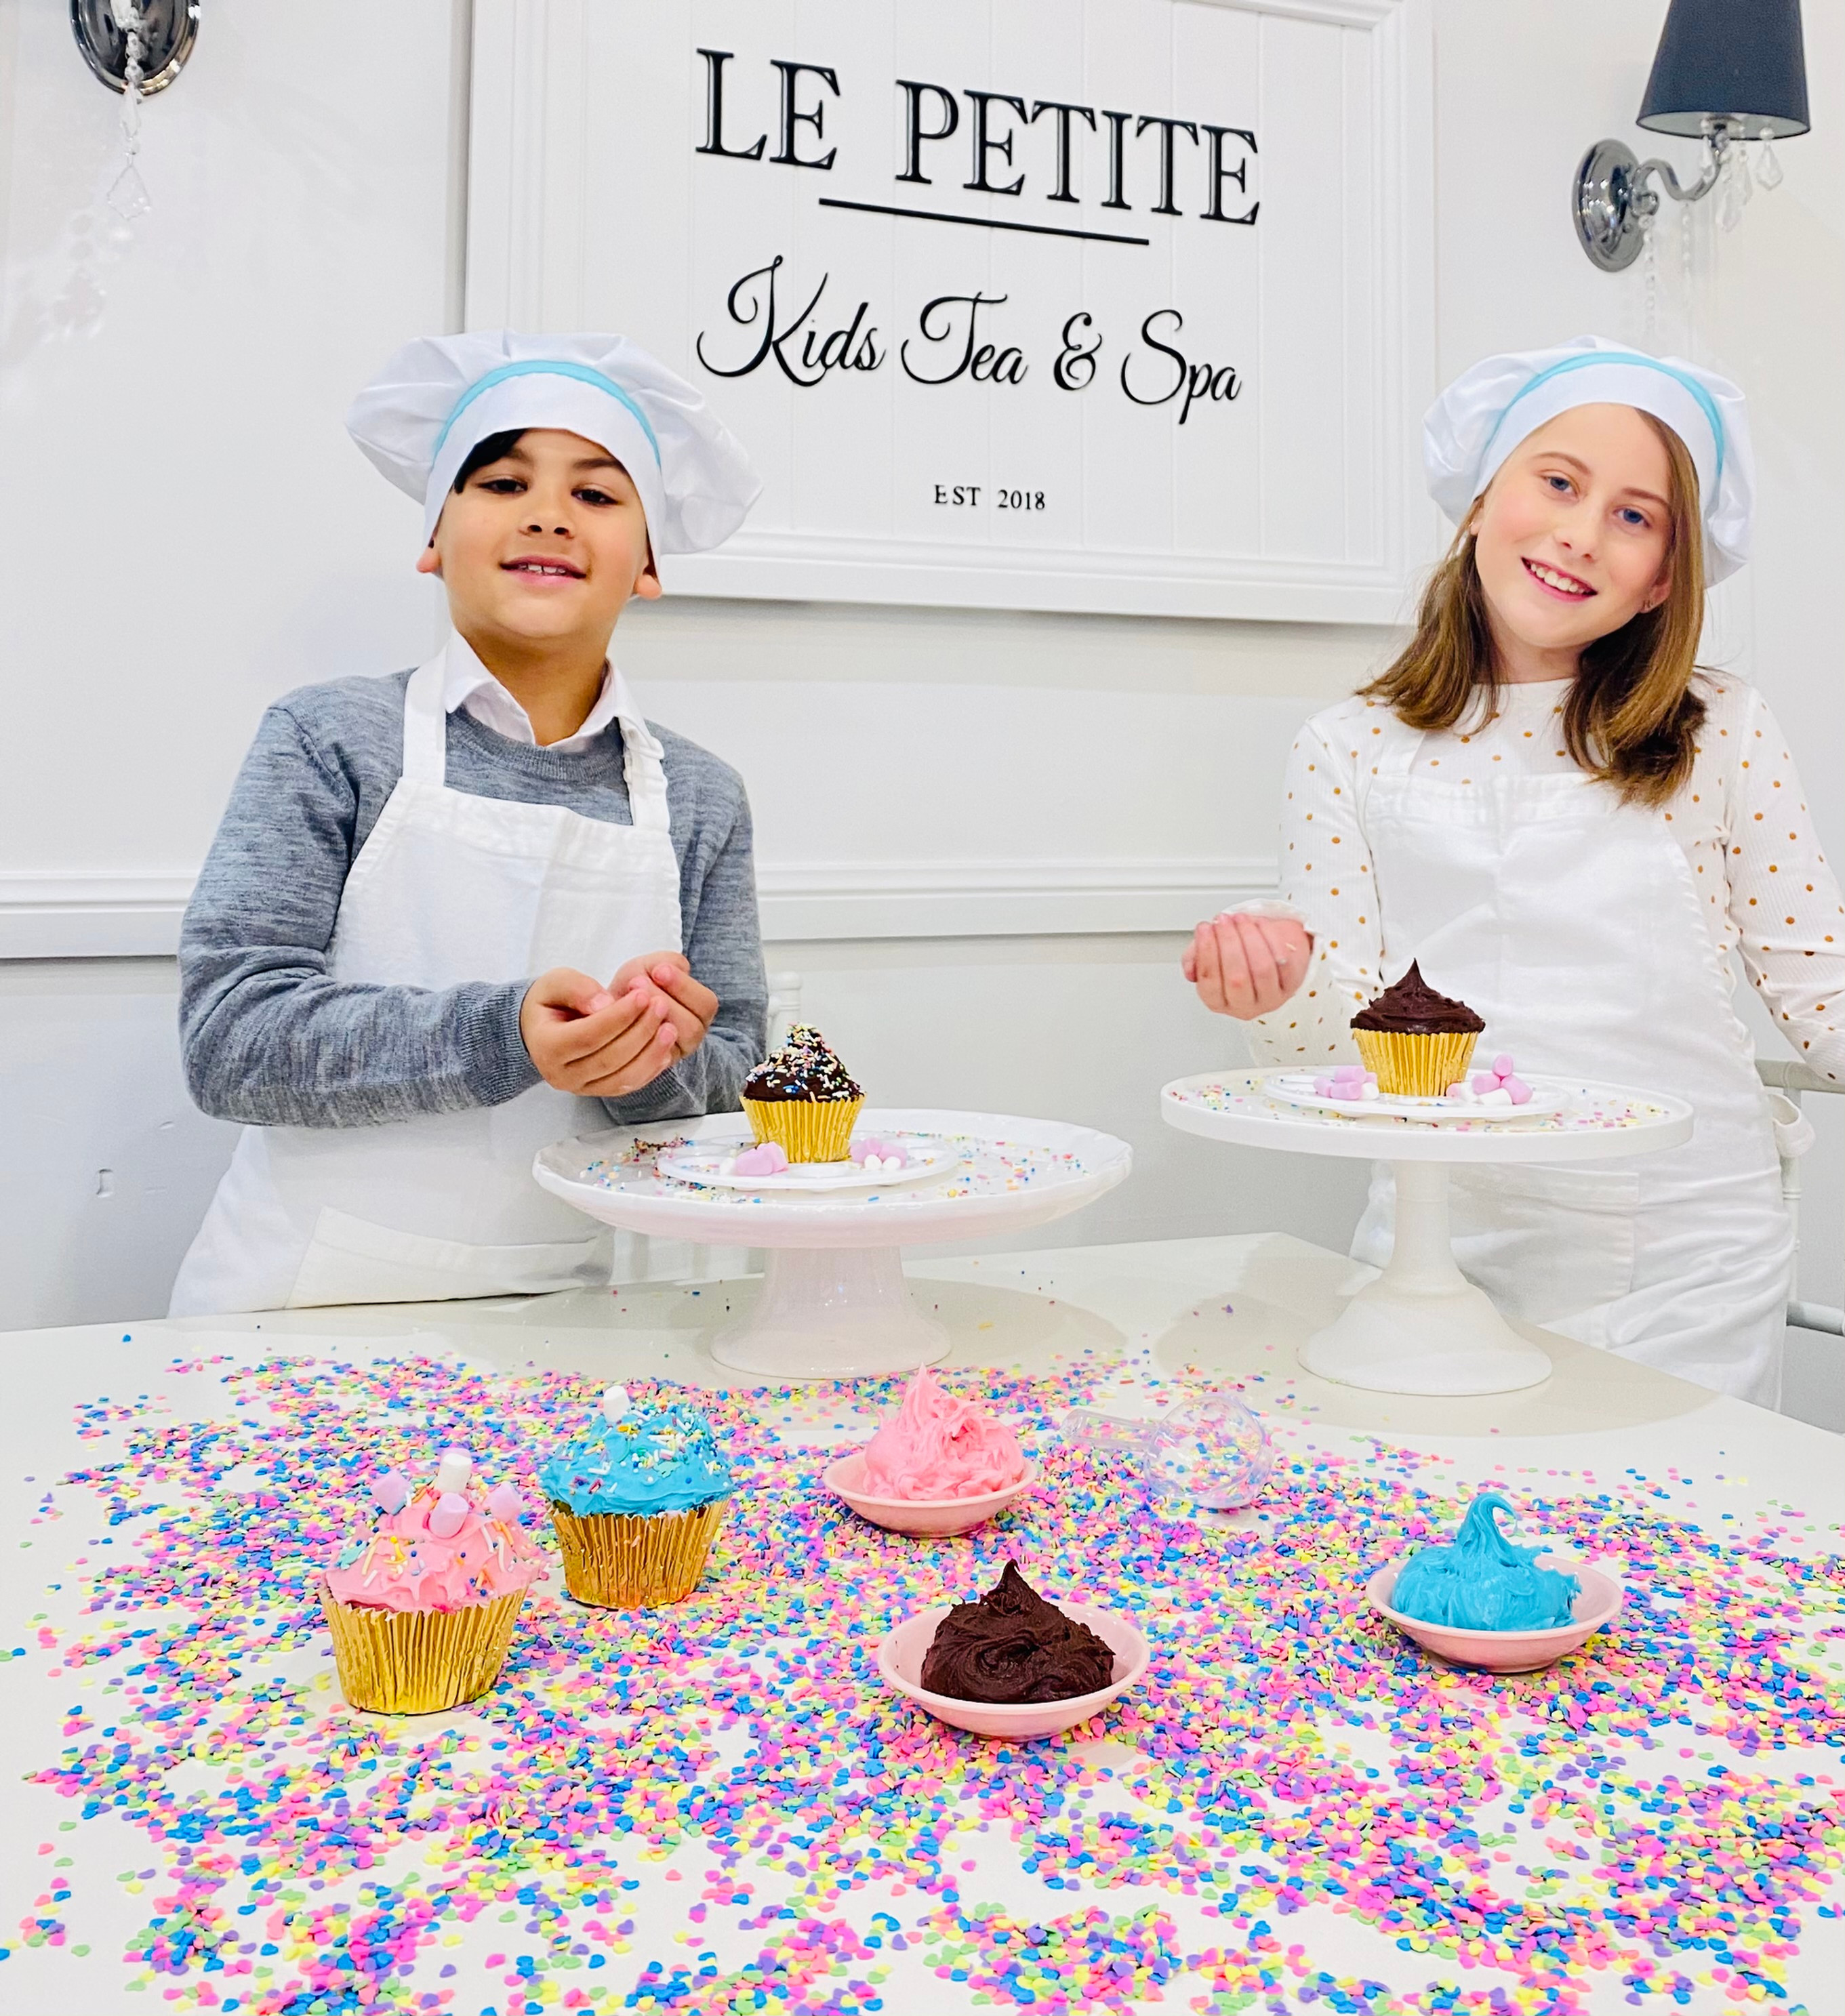 Cupcake Decorating Party $650 (+gst)